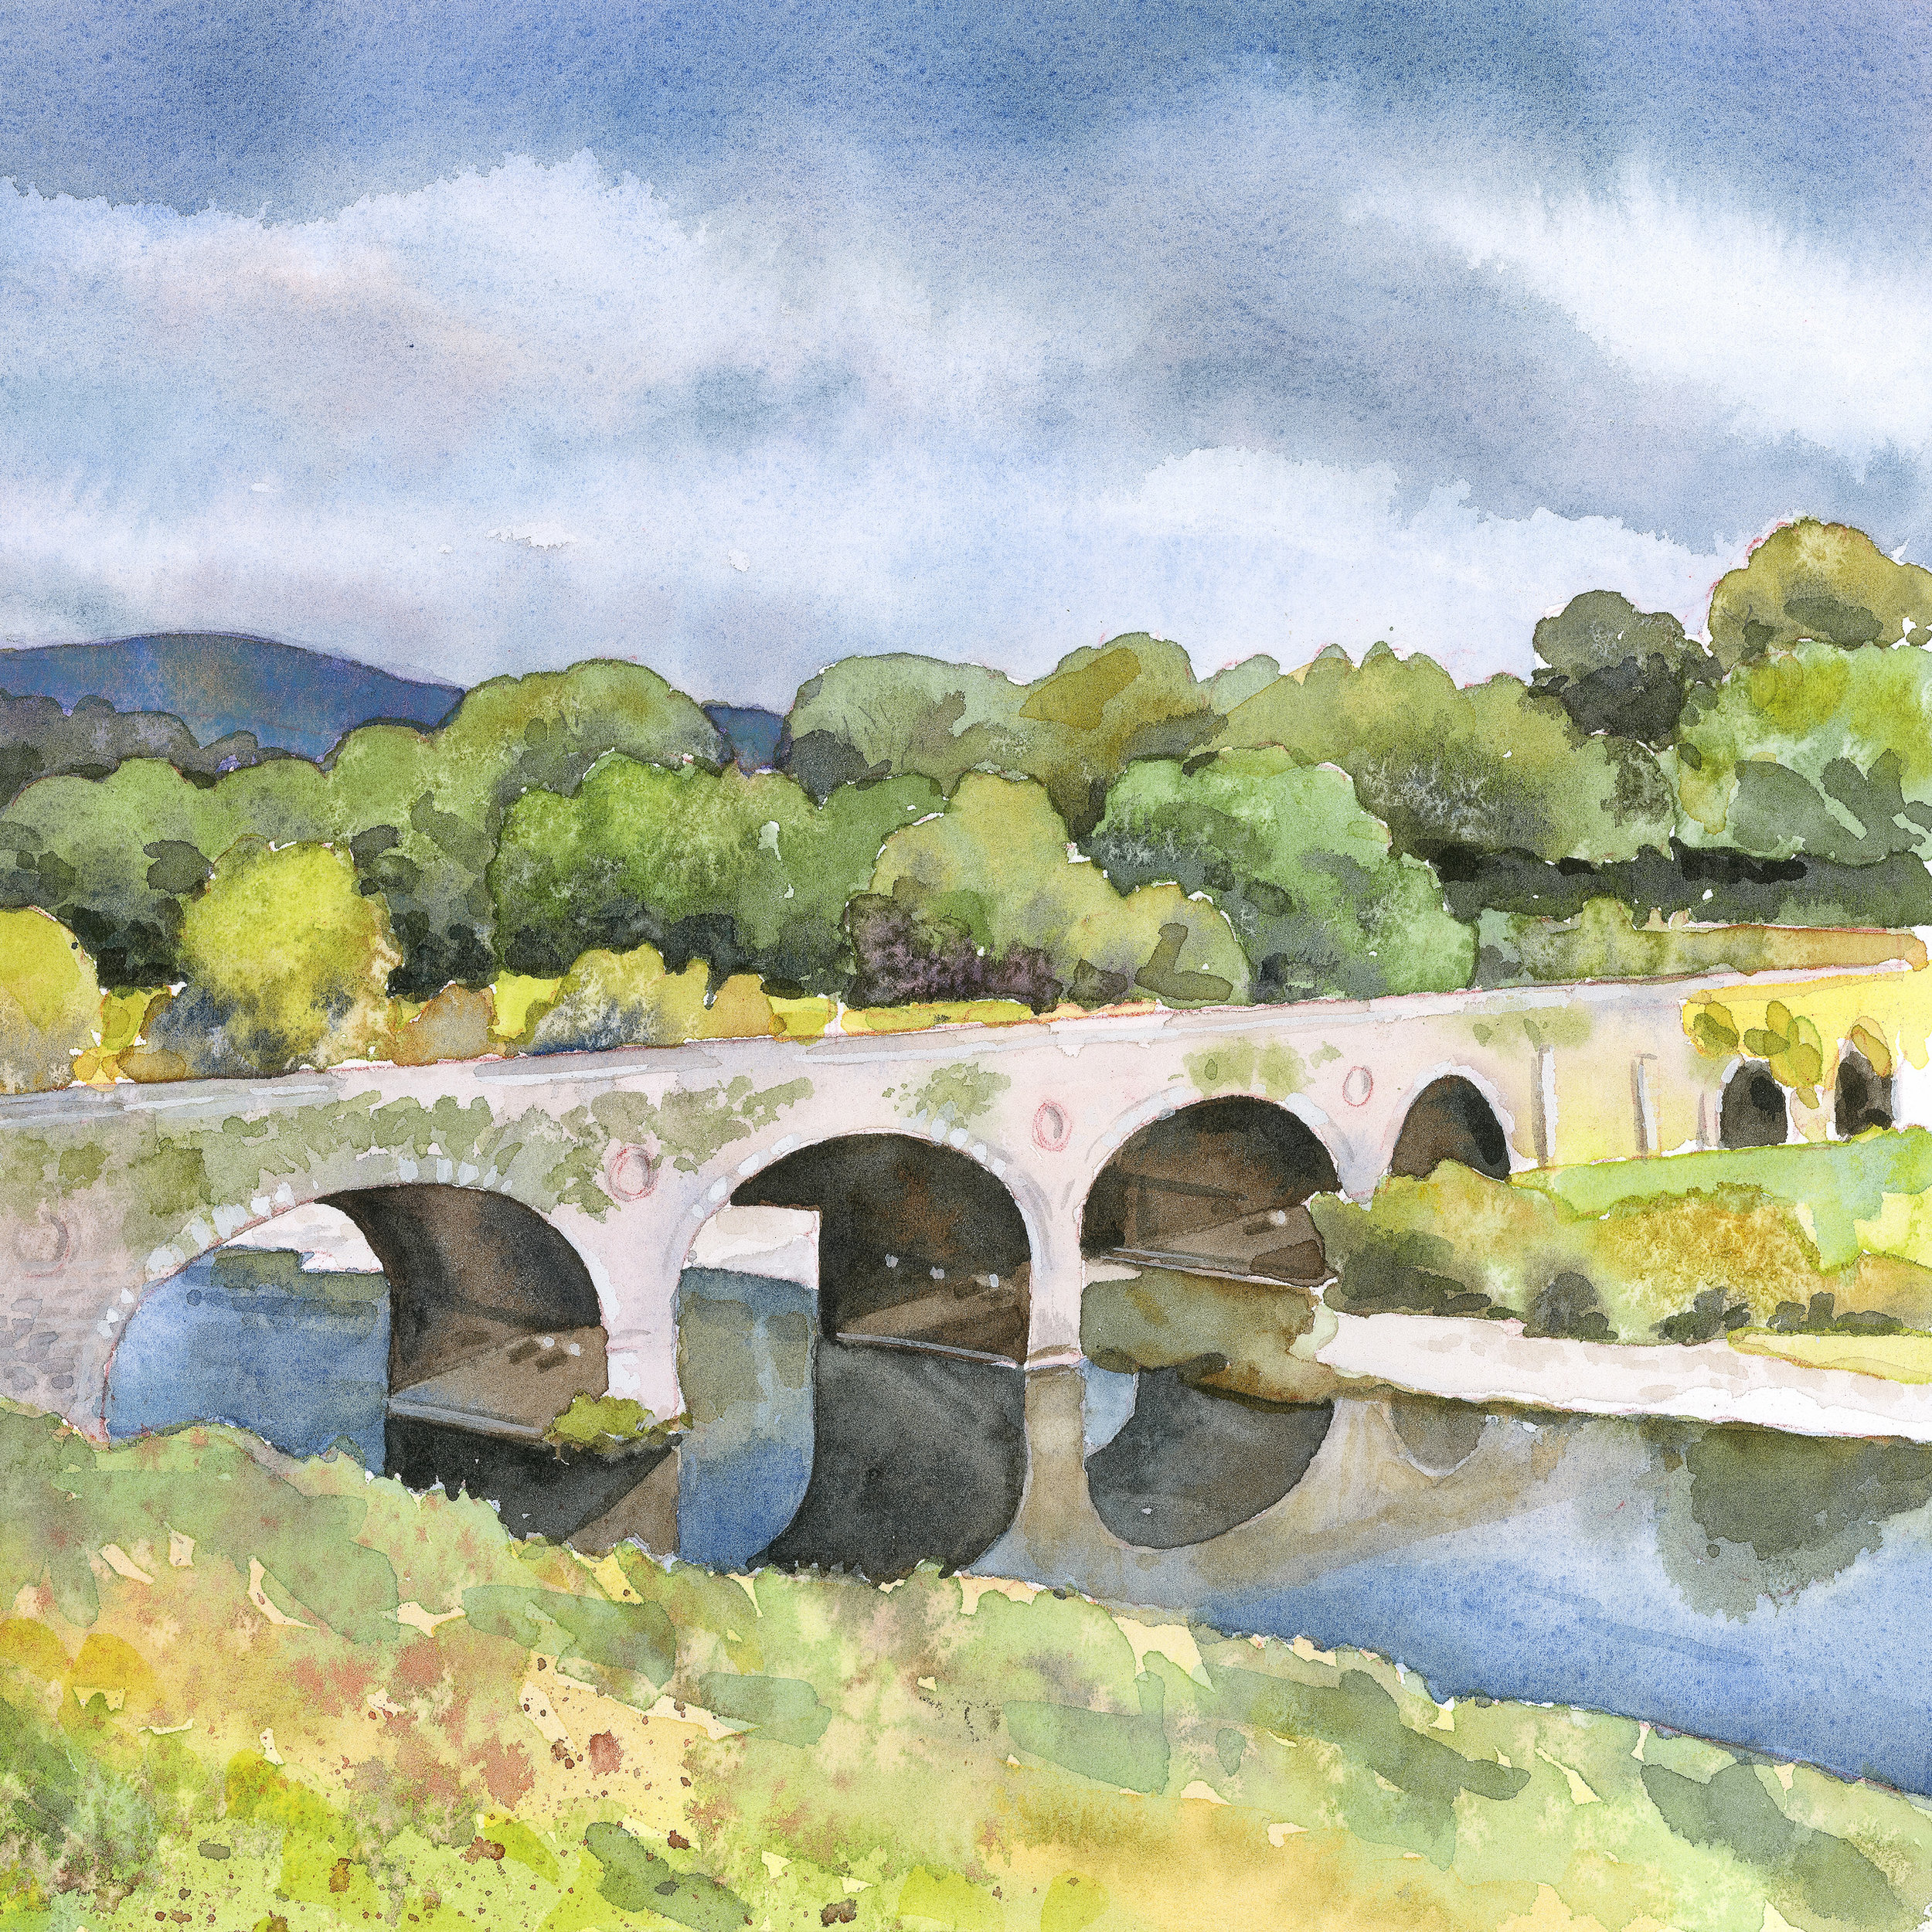 Crossing the River Nore   archival print   image 8.5 x 8.5   $50